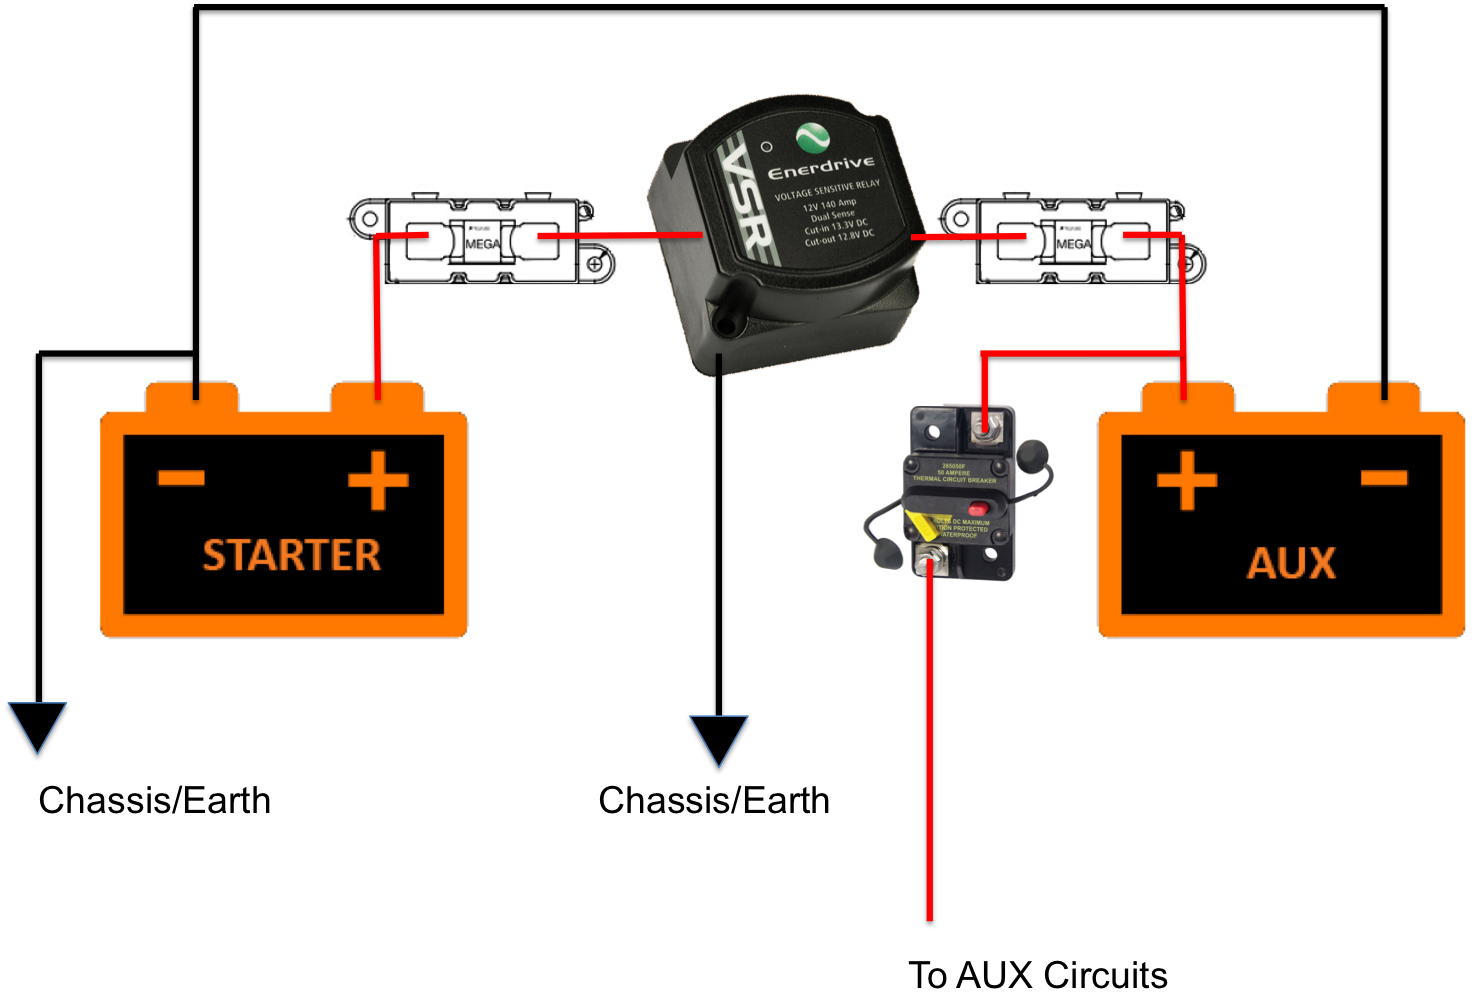 EnerderriveMegafuseBreaker install guides solid kit vsr relay wiring diagram at bayanpartner.co